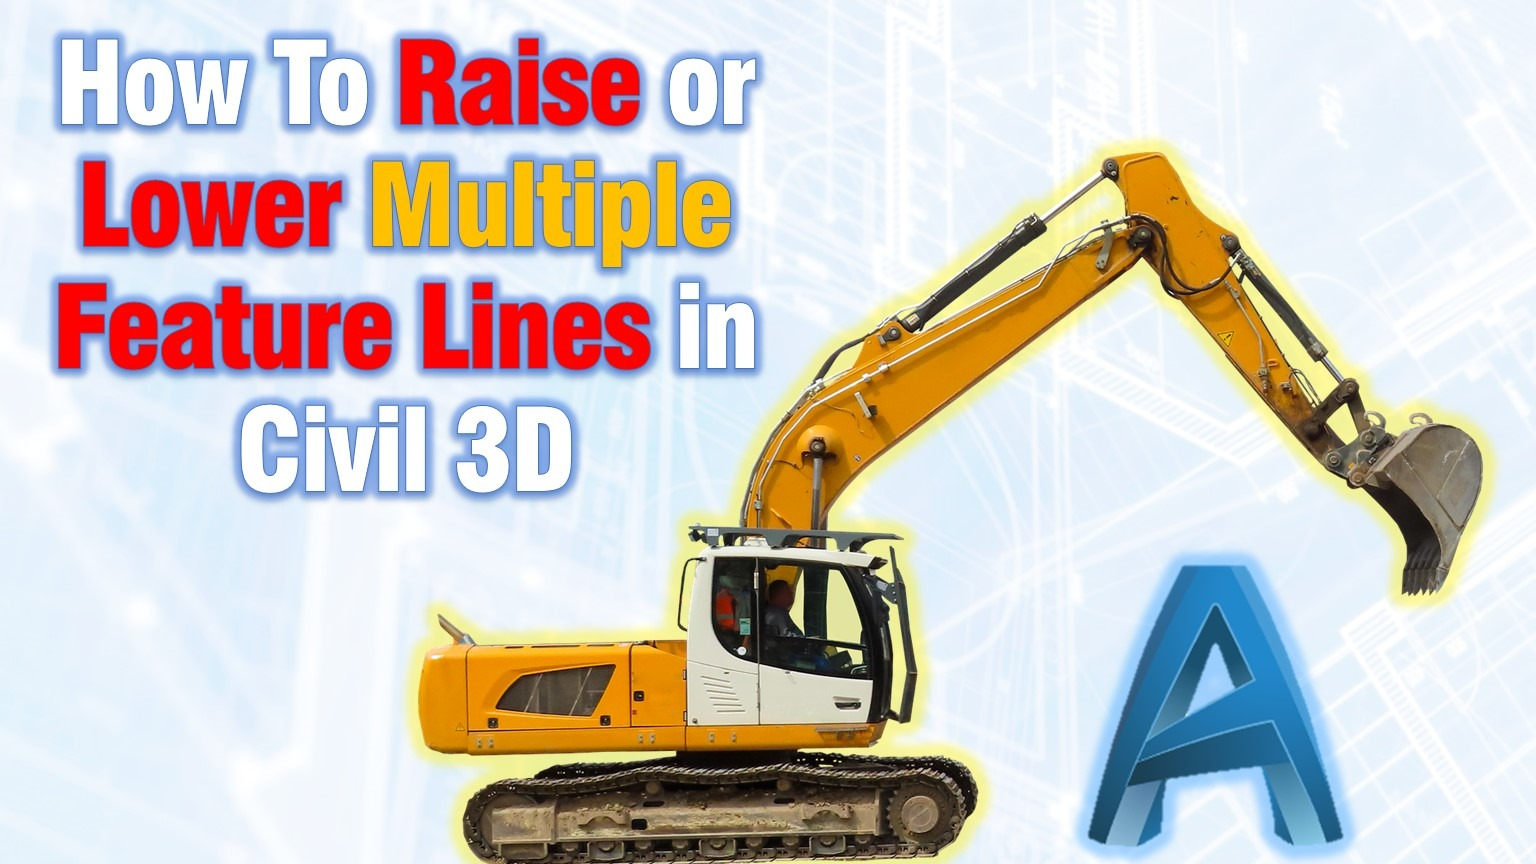 Raise Lower Feature Lines Civil 3D